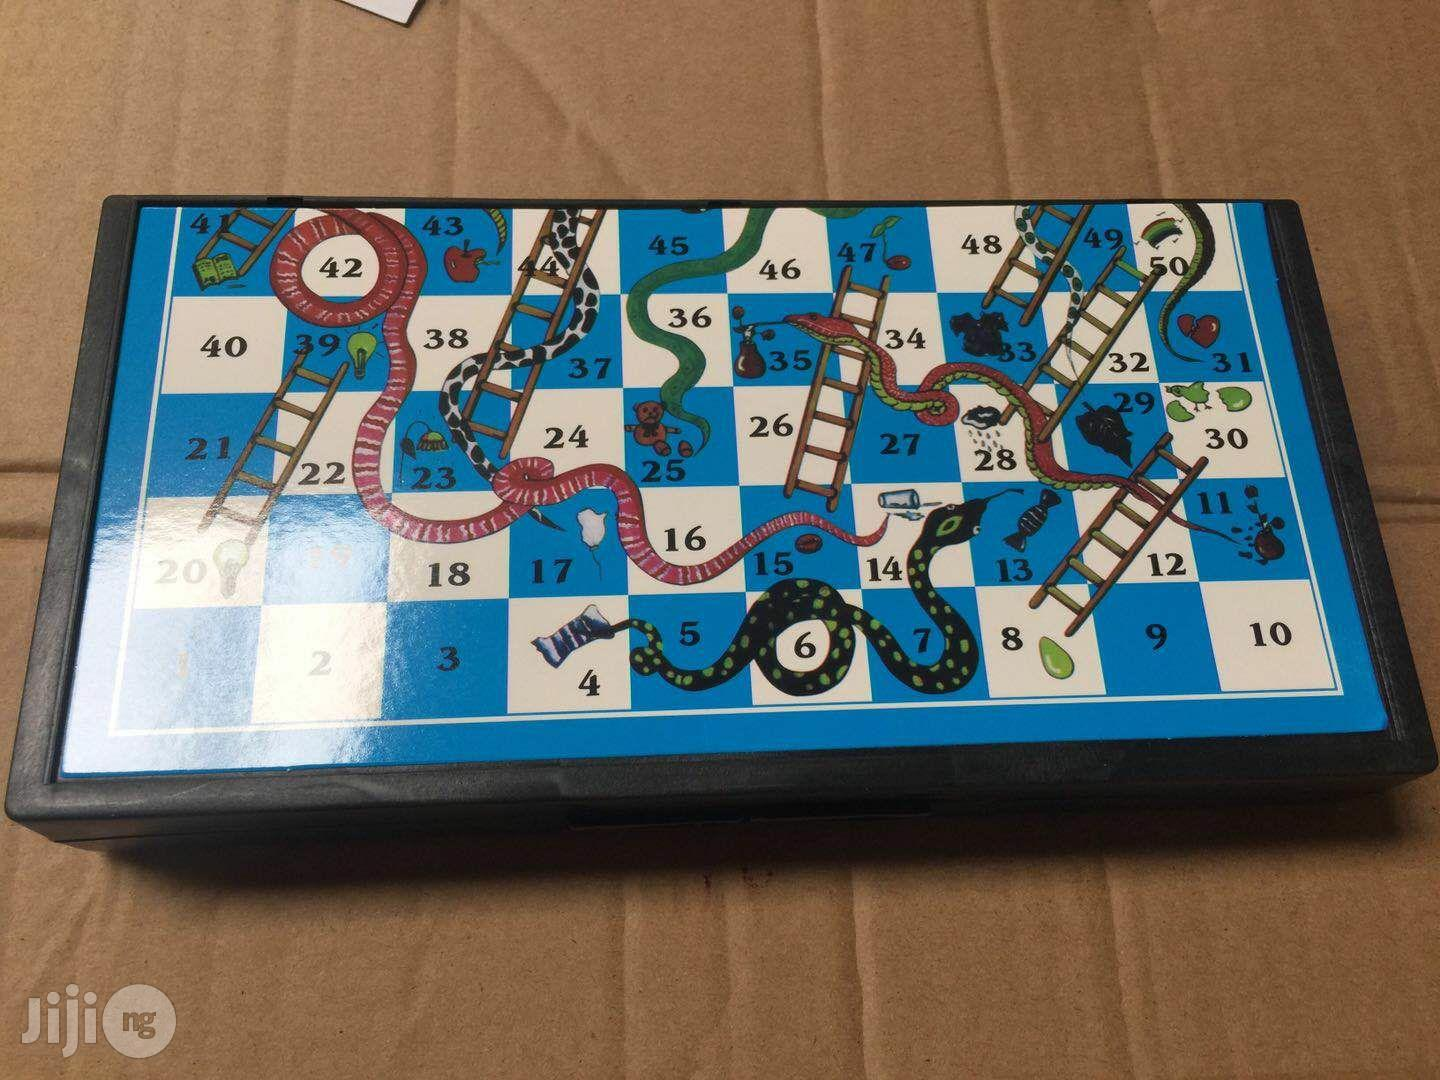 Backgammon Snake And Ladder Game   Books & Games for sale in Oshodi-Isolo, Lagos State, Nigeria